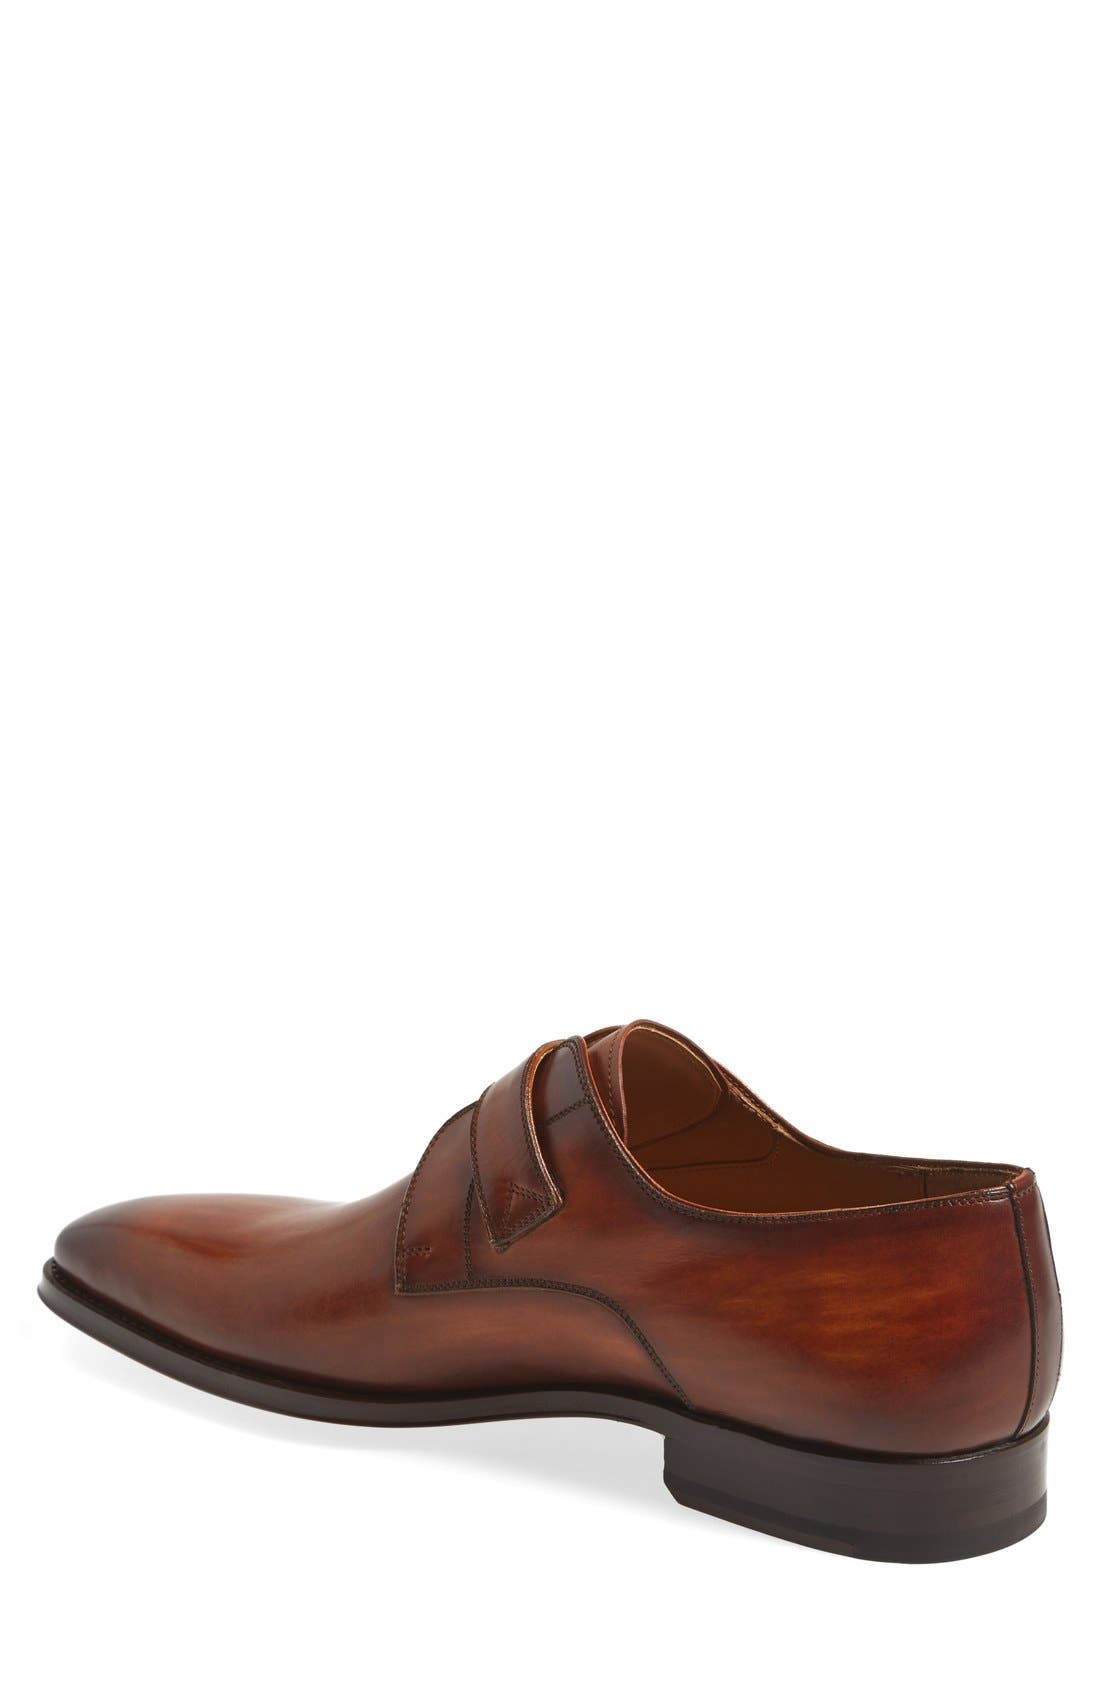 MAGNANNI, Marco Monk Strap Loafer, Alternate thumbnail 3, color, CUERO BROWN LEATHER